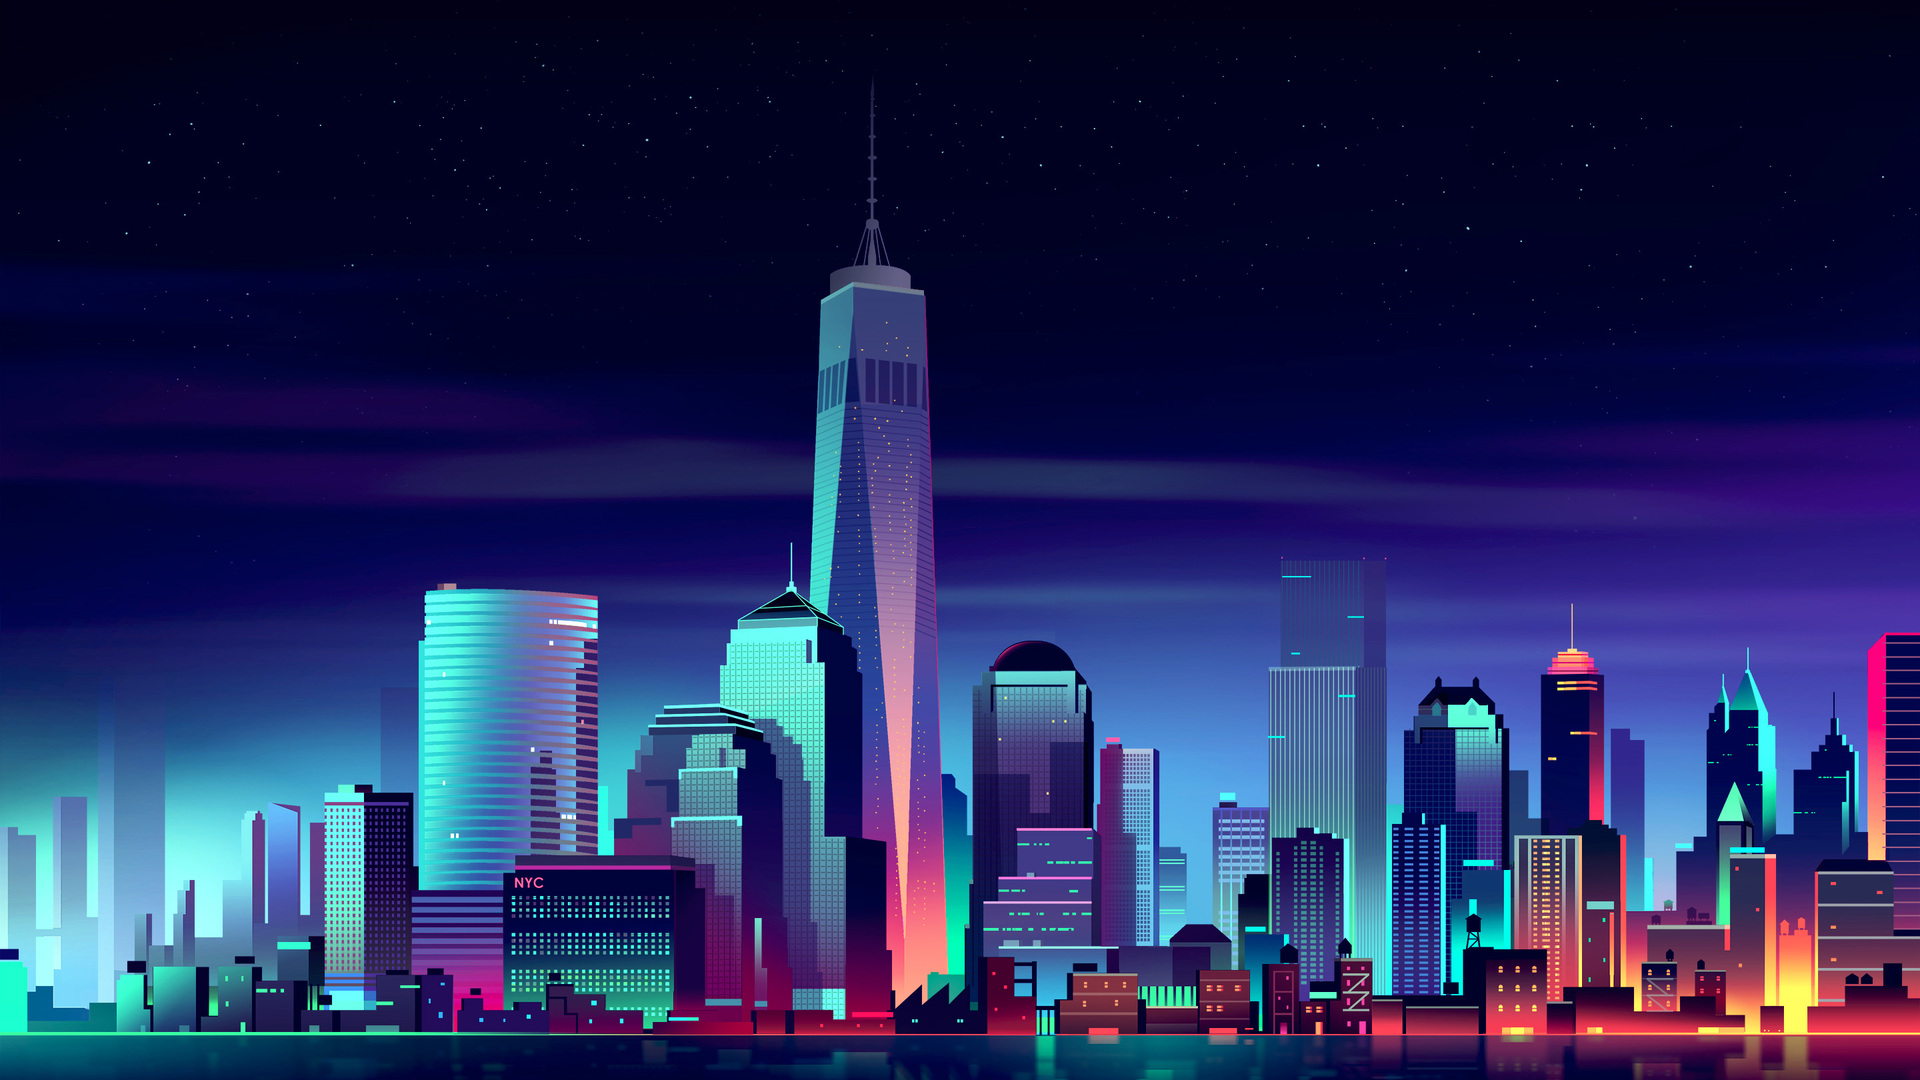 1920x1080 newyork city minimalism laptop full hd 1080p hd 4k